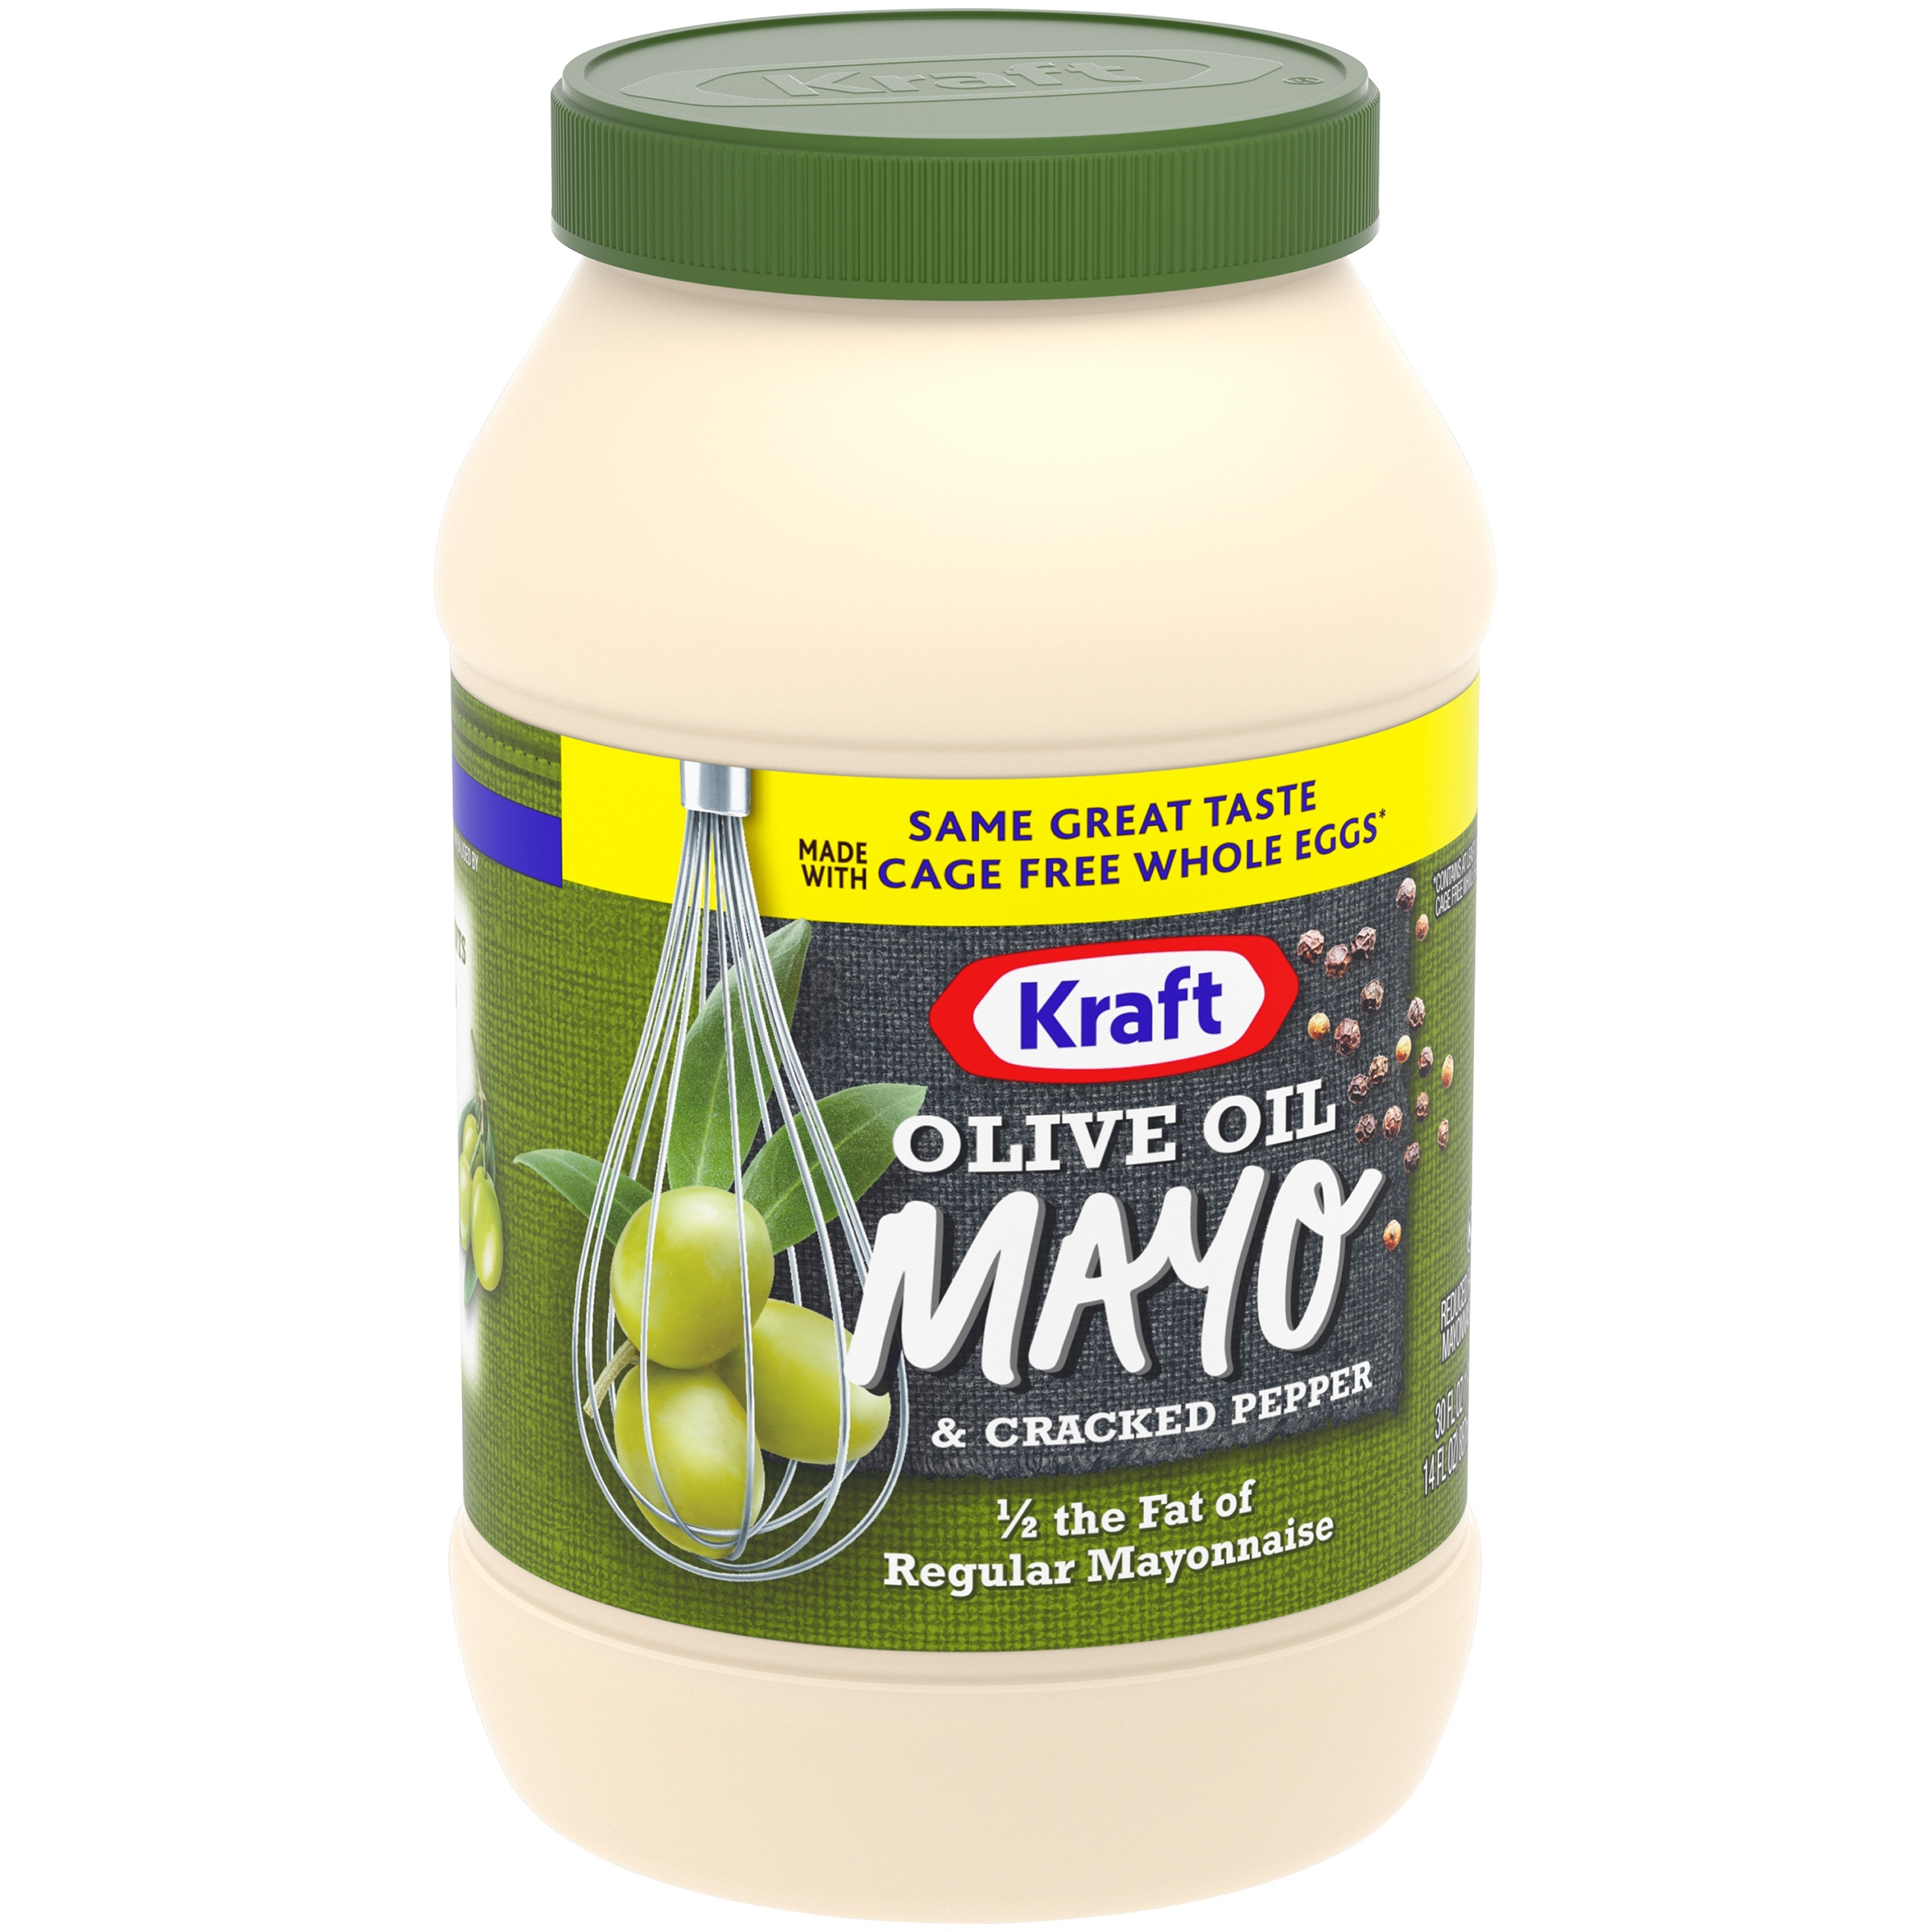 Kraft Olive Oil & Cracked Pepper Reduced Fat Mayonnaise 30 fl. oz. Jar